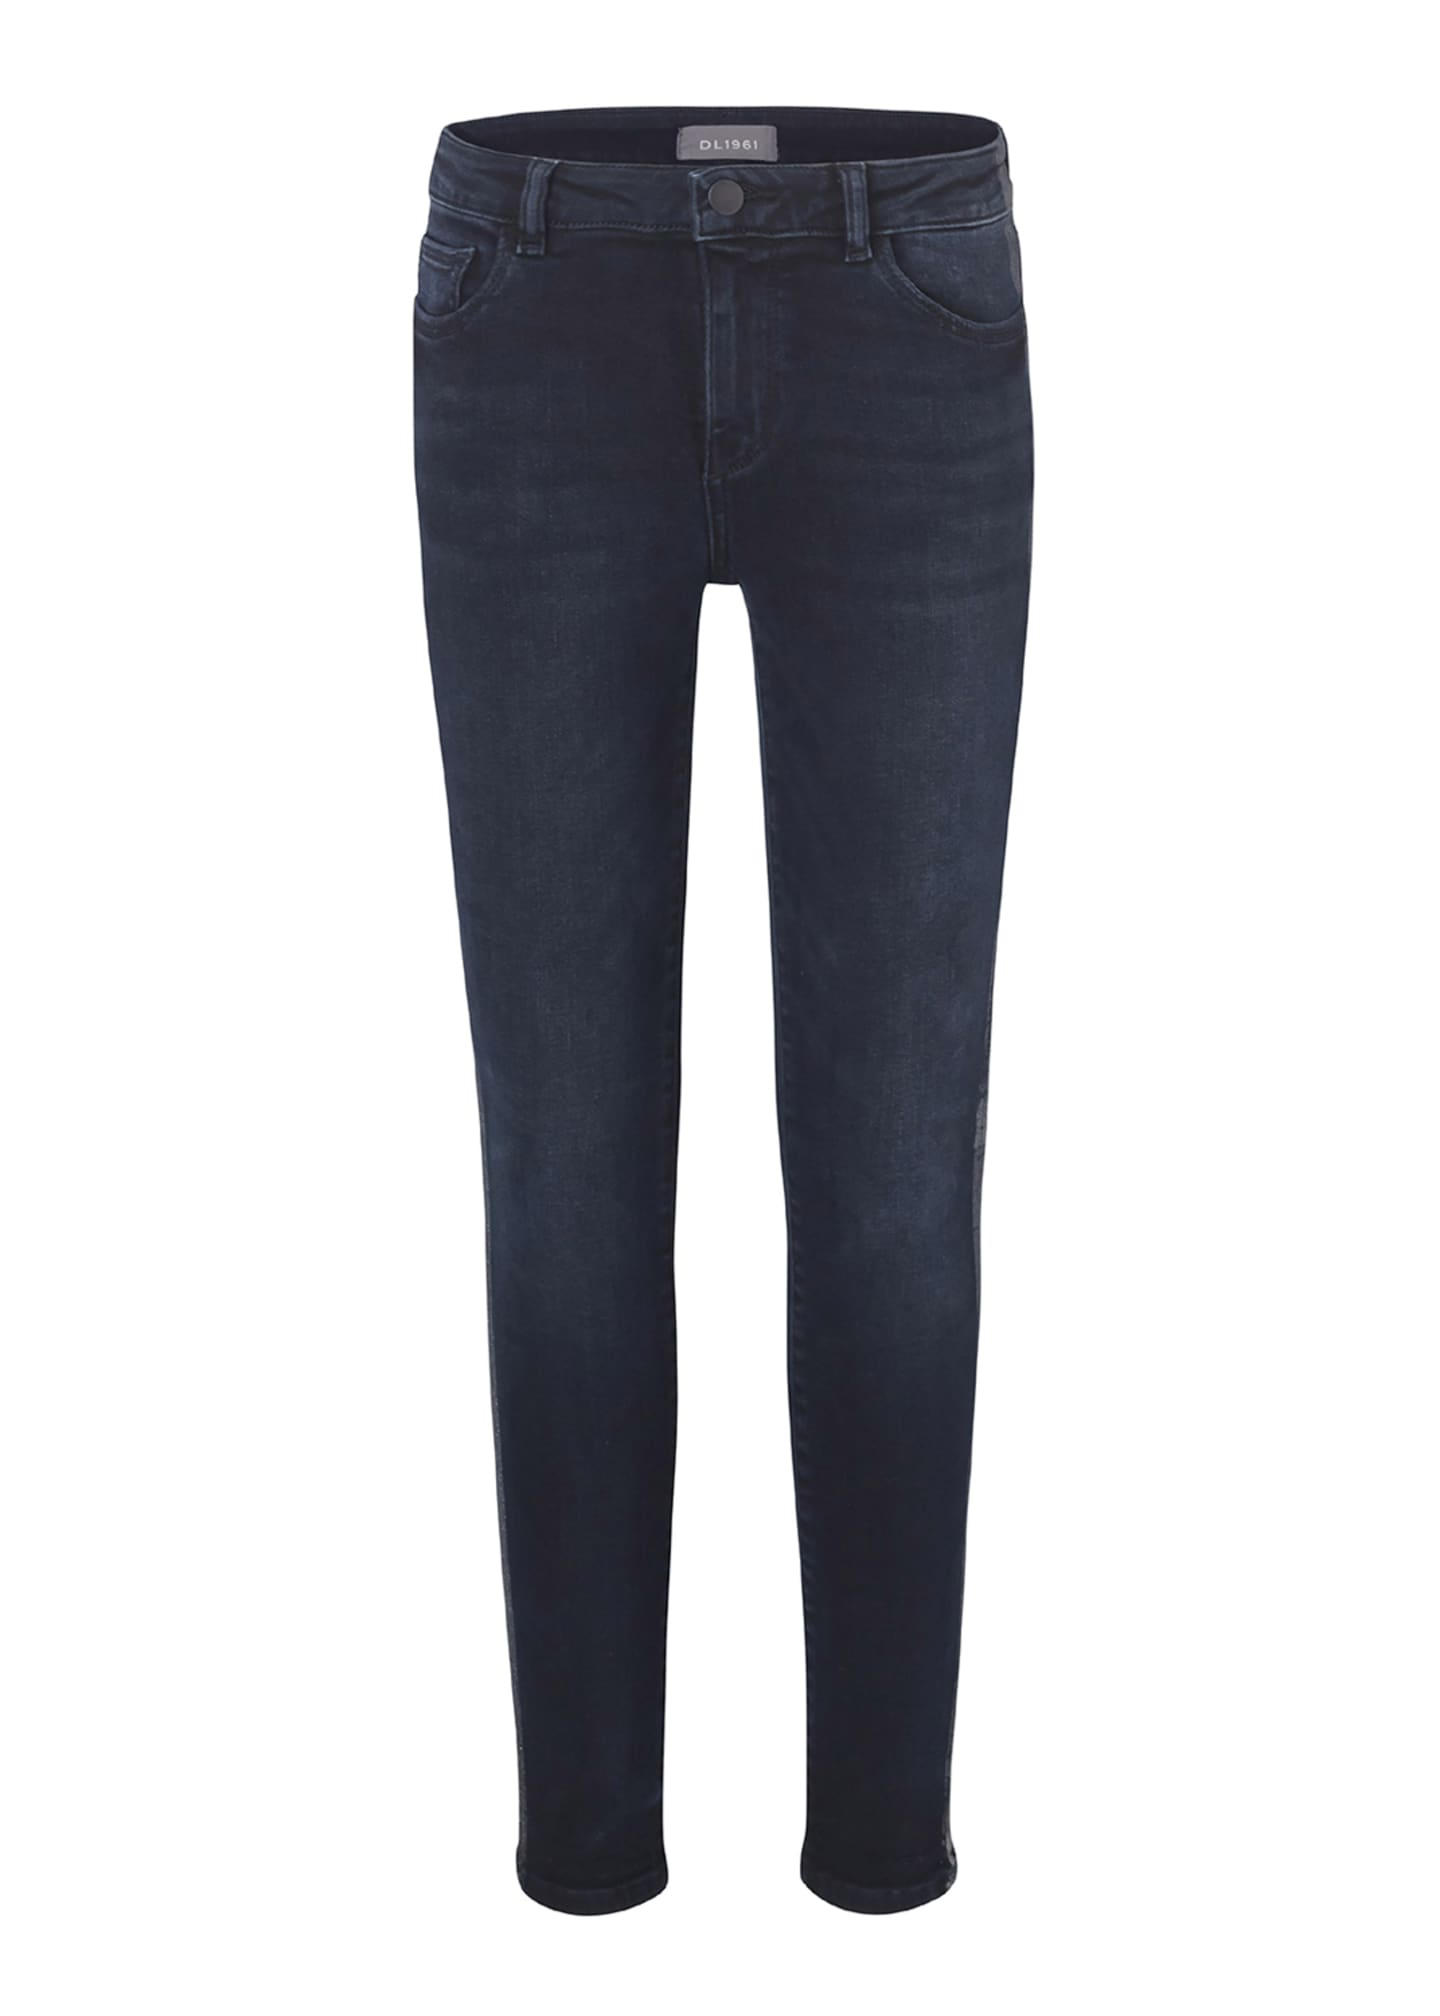 DL1961 Premium Denim Girl's Chloe Skinny Metallic Side-Taping